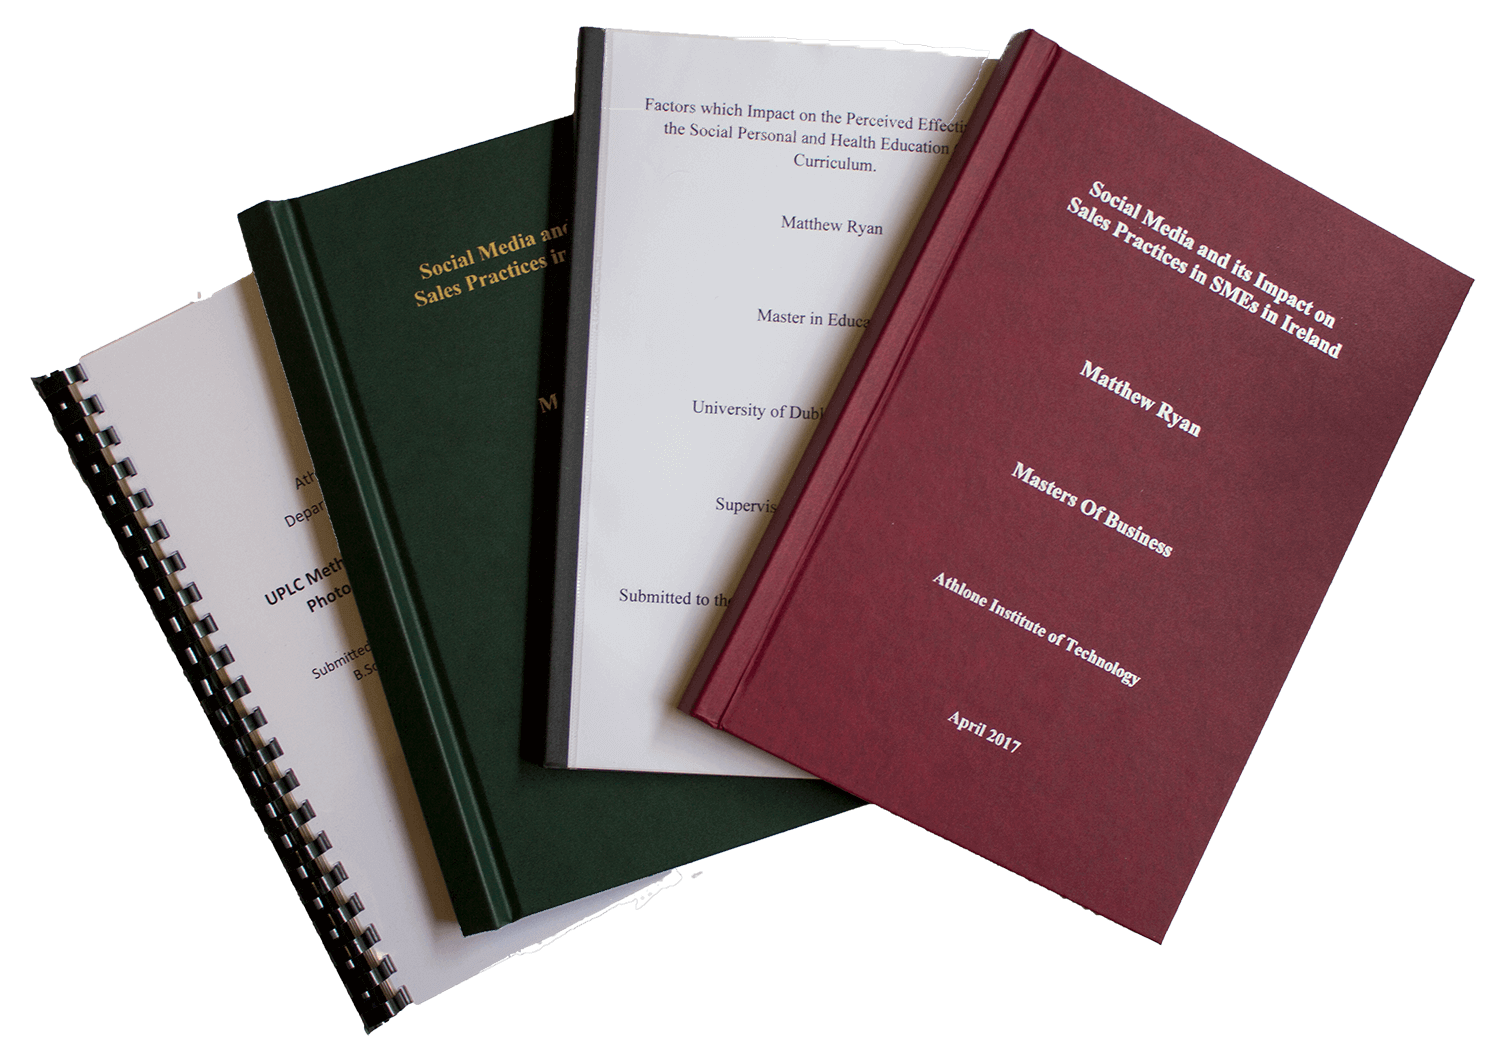 dissertation and thesis binding Even with soft binding, it's still manufactured for long-term useu  are the quickest way to obtain a printed dissertation or thesis.